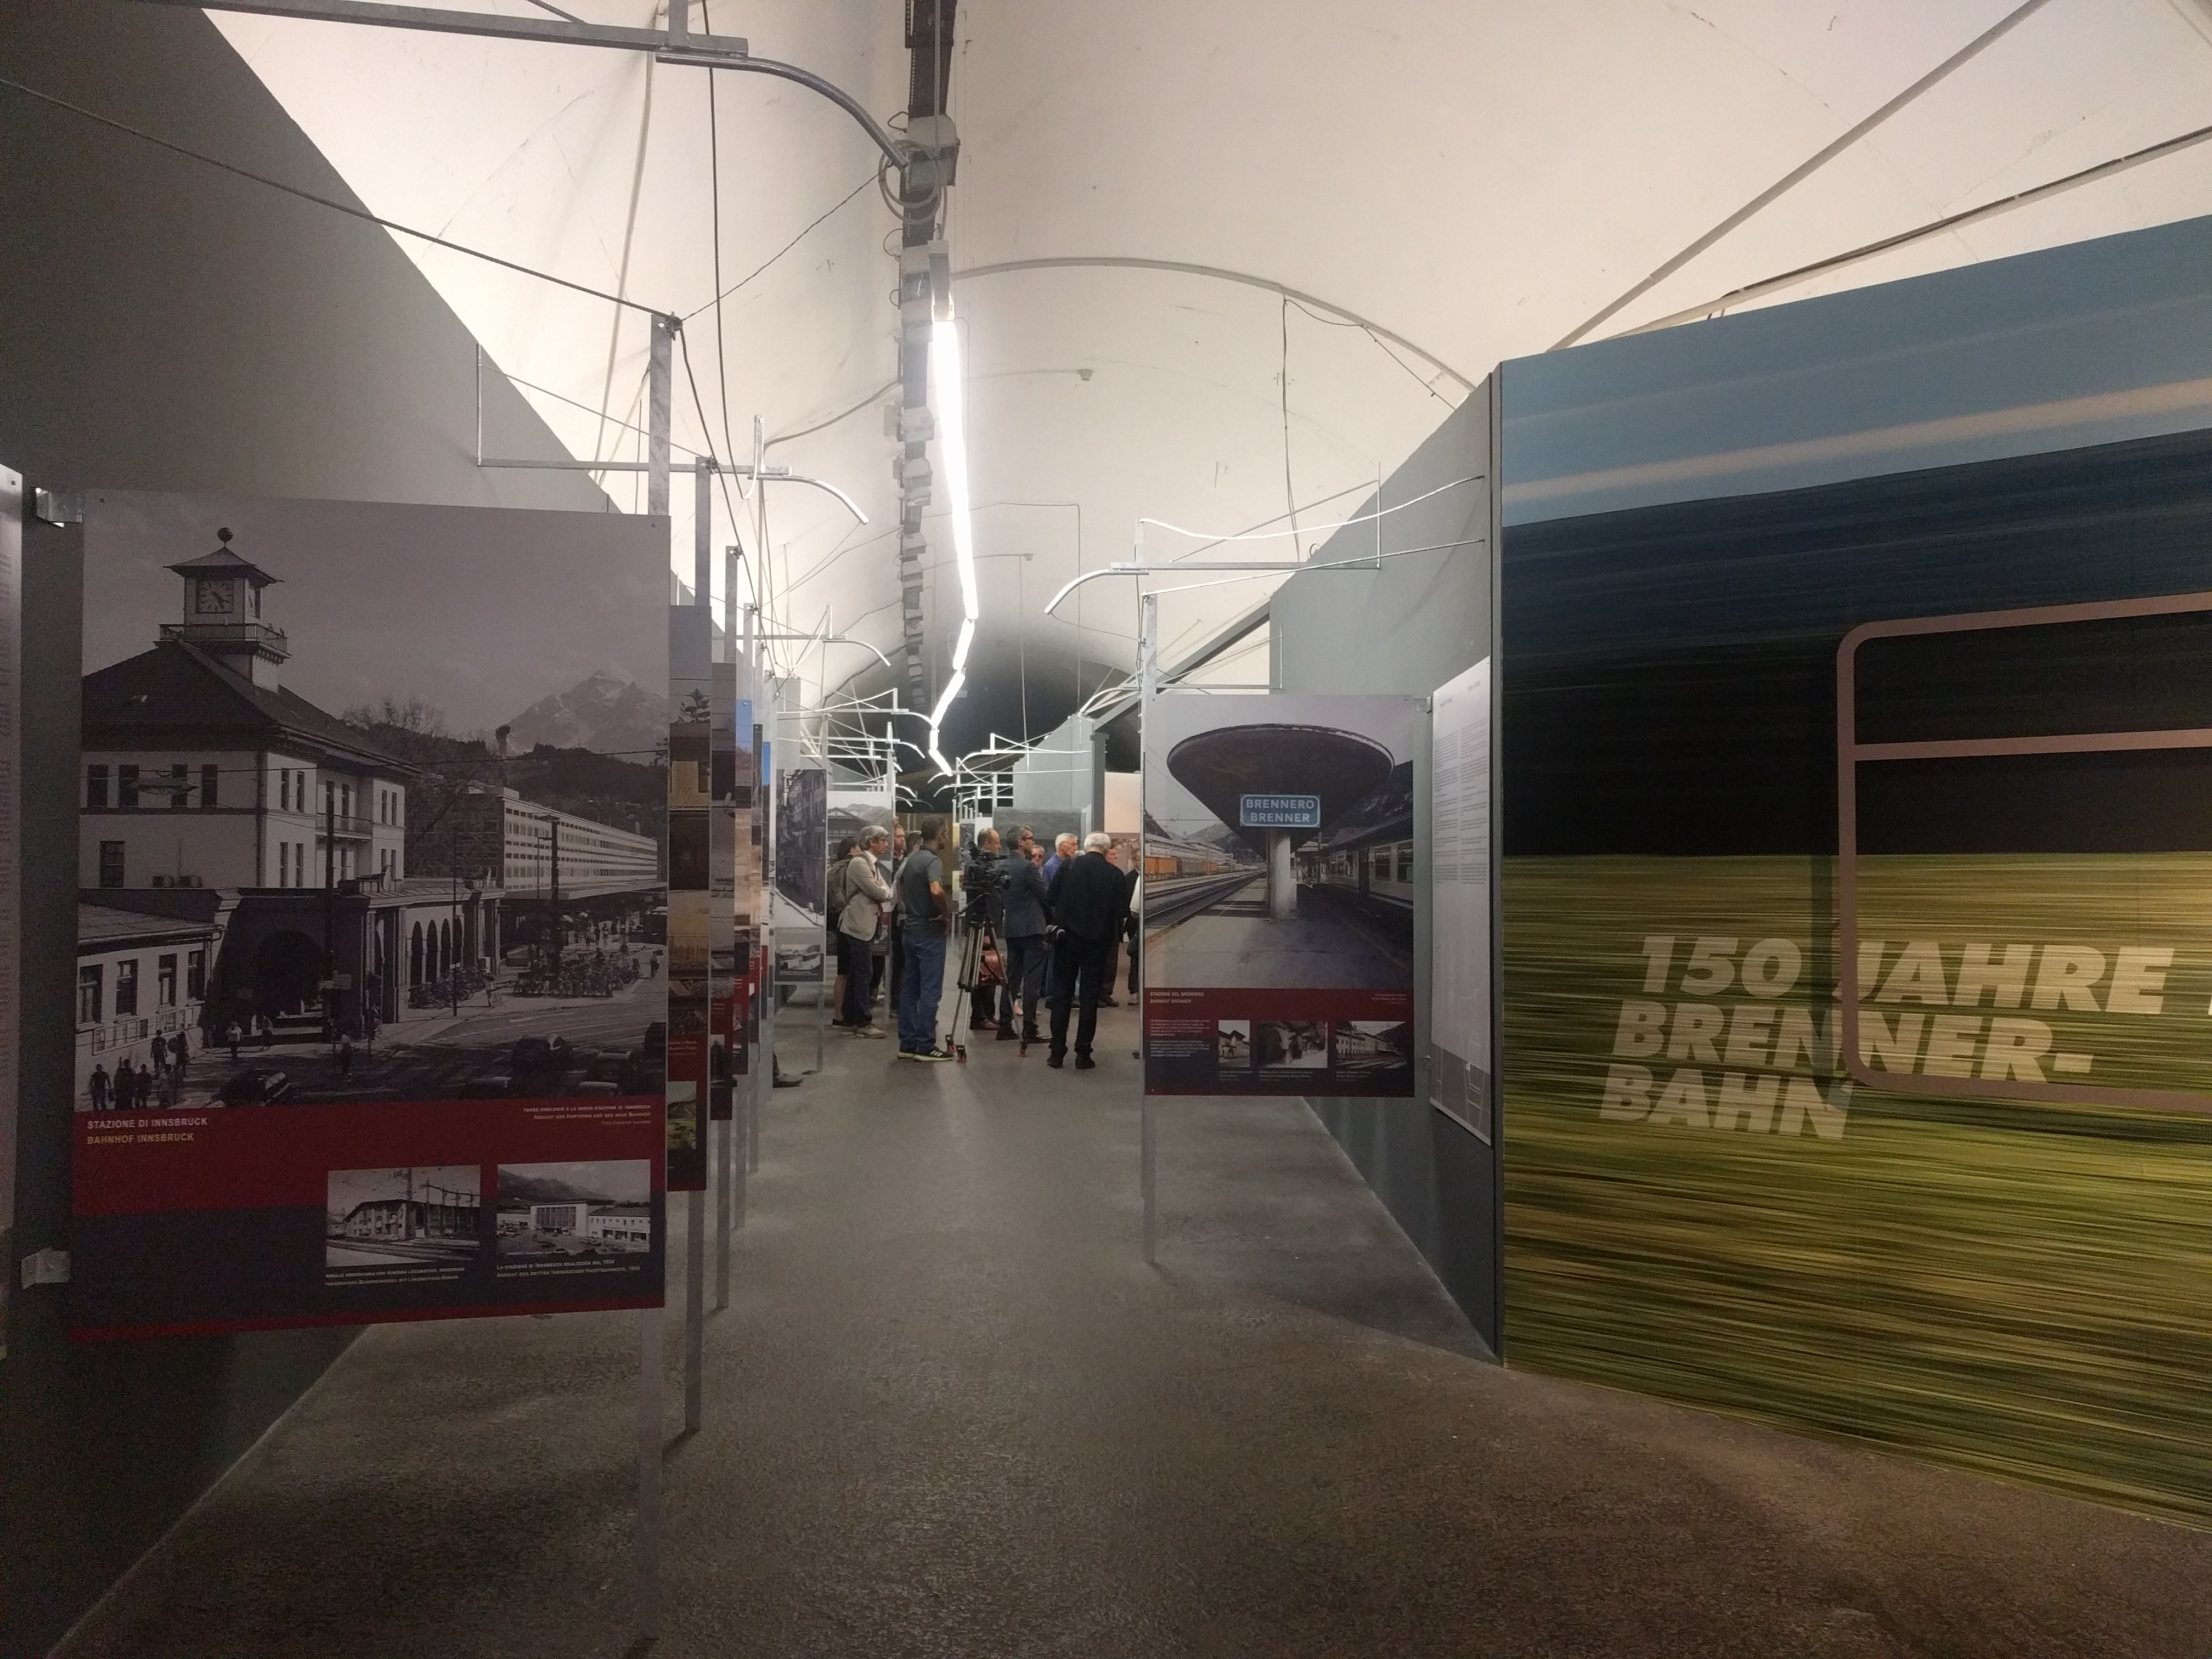 """Visit of the exhibition """"150 years Brenner Railway"""""""